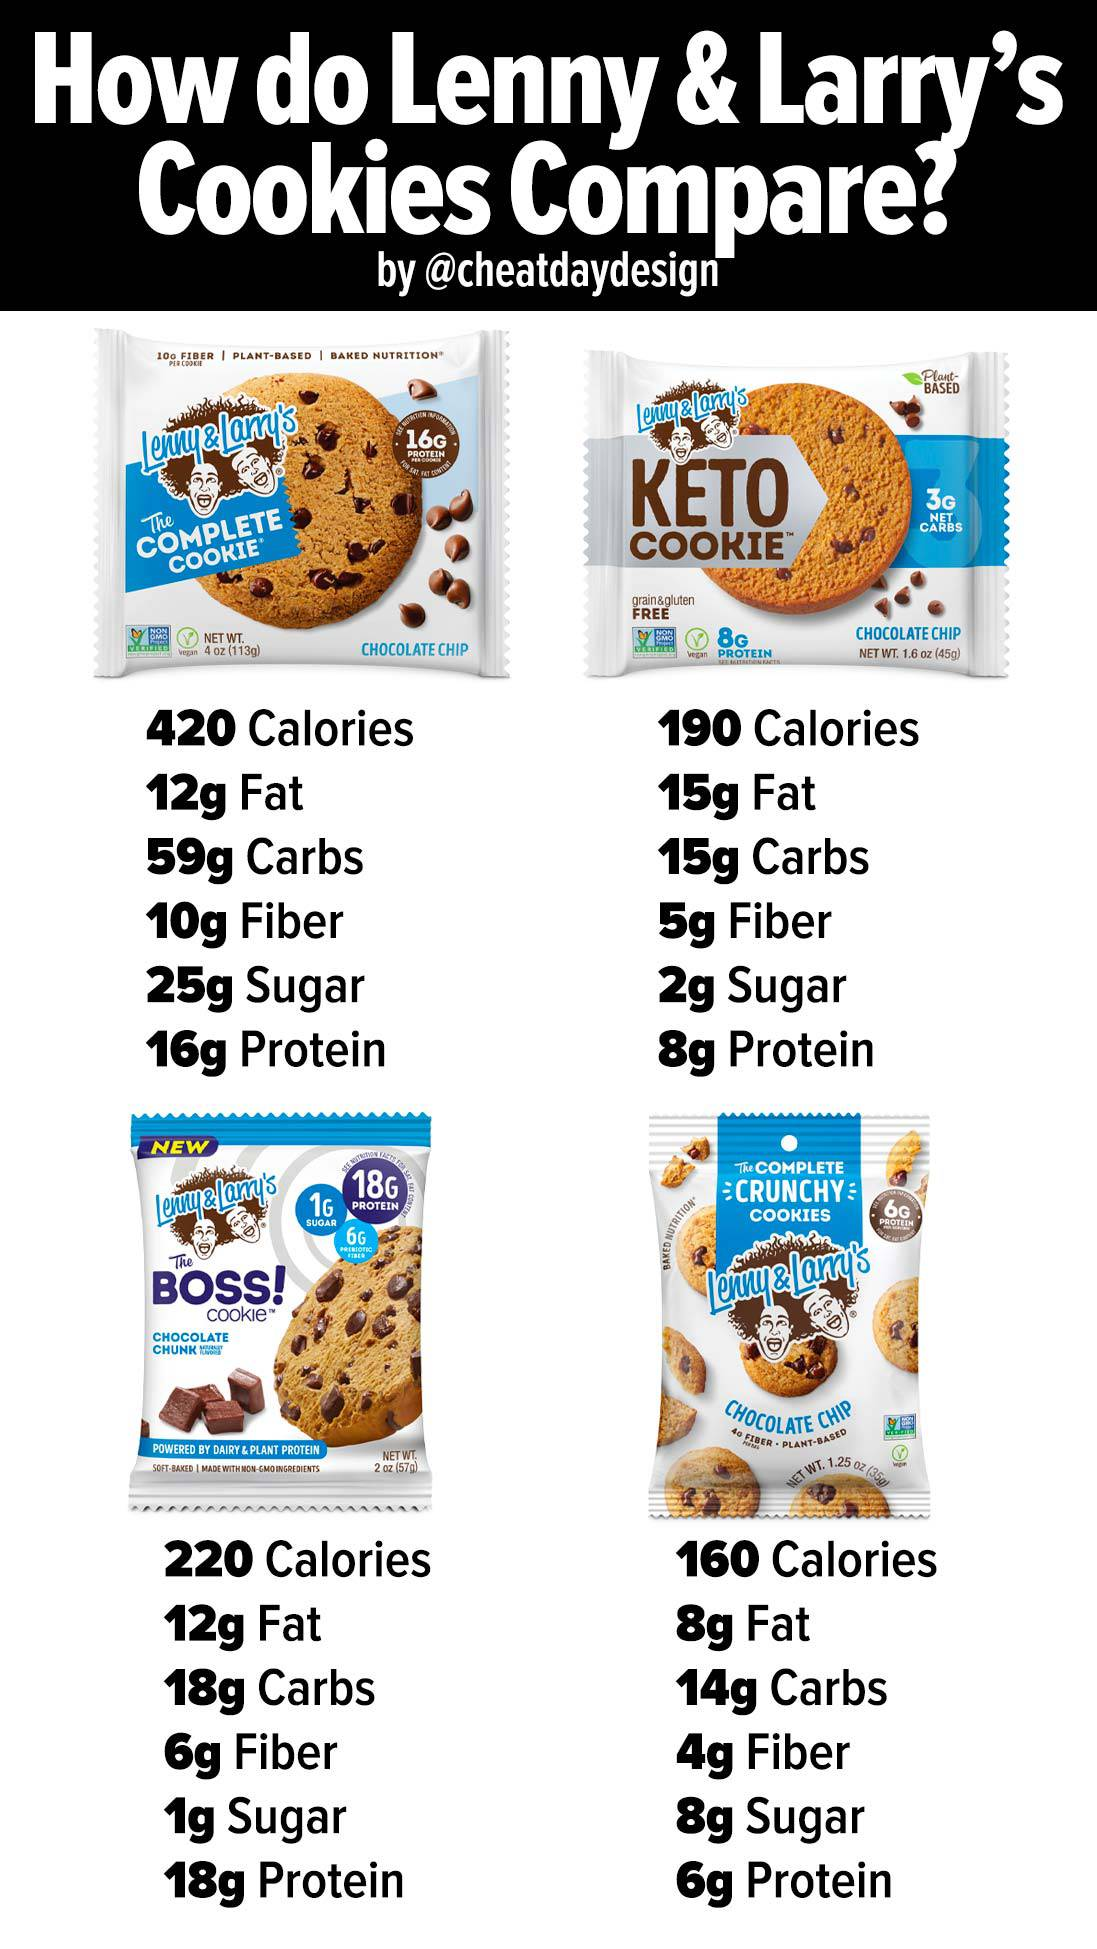 Which Lenny & Larry's cookie is the healthiest